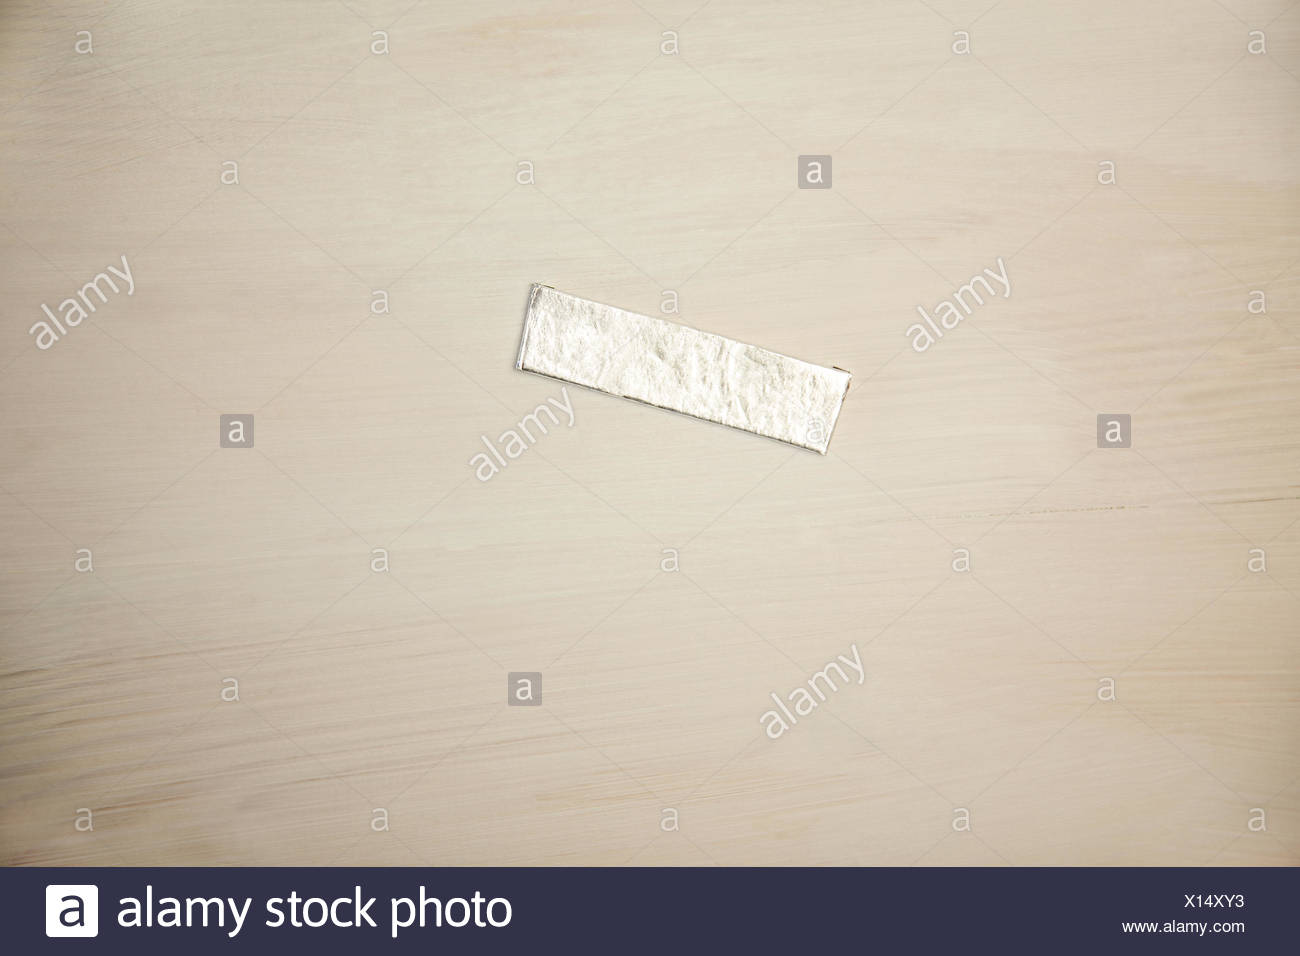 Chewing gum wrapper on wooden desk - Stock Image